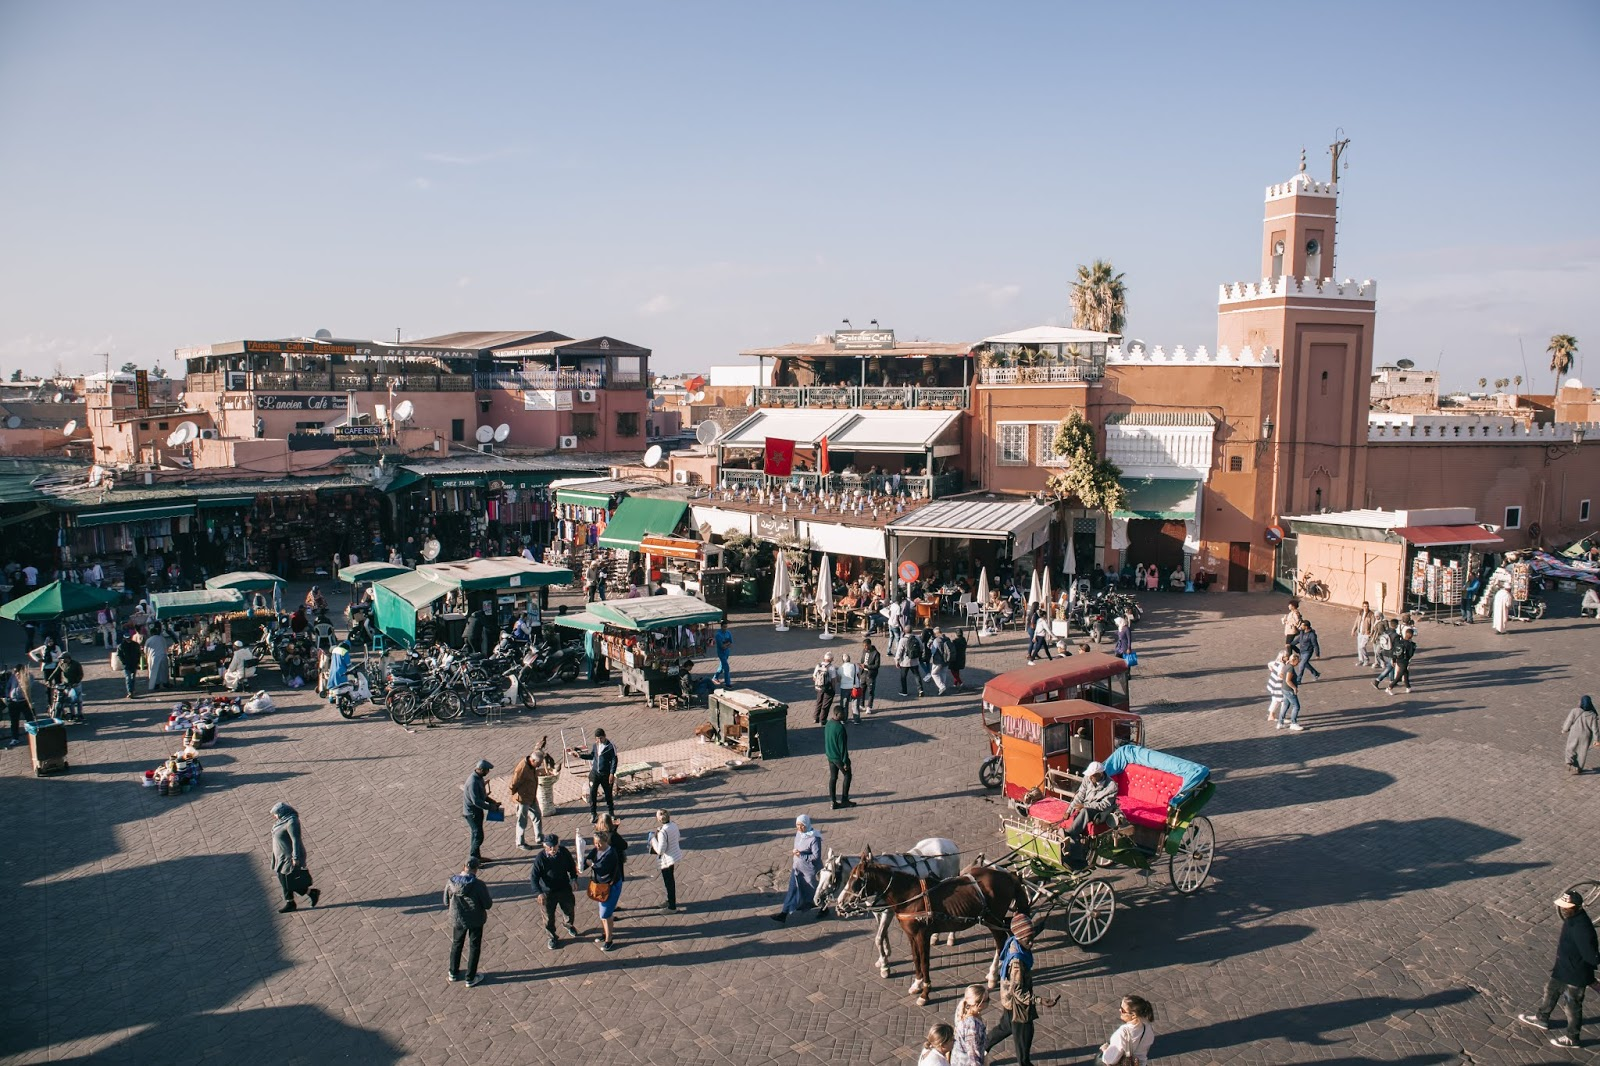 impressions of Marrakesh, Marrakech November 2018, Marrakesh November, Marrakesh travel, Suz and the Sun Travels, Suz & the Sun, Jemaa El-Fnaa Square